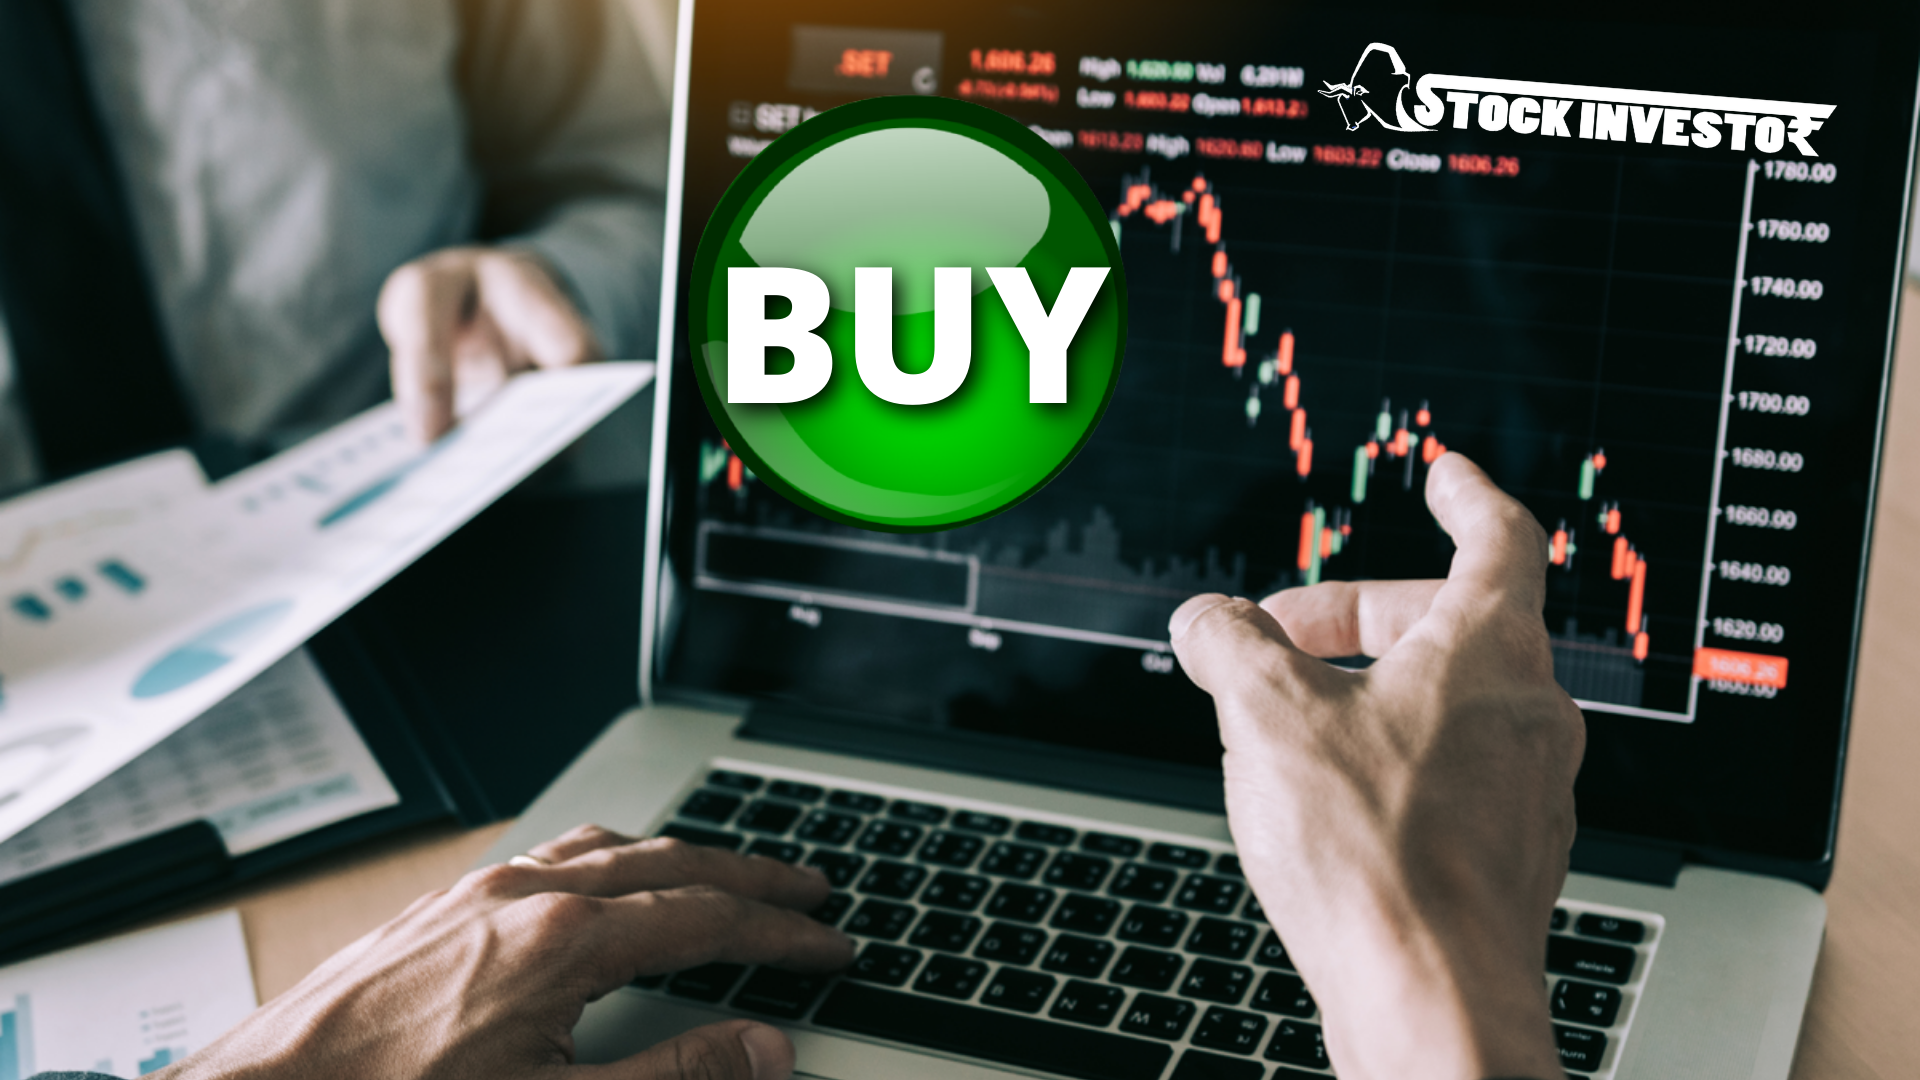 Buy HDFC Asset Management Company Limited and Tata Steel Limited